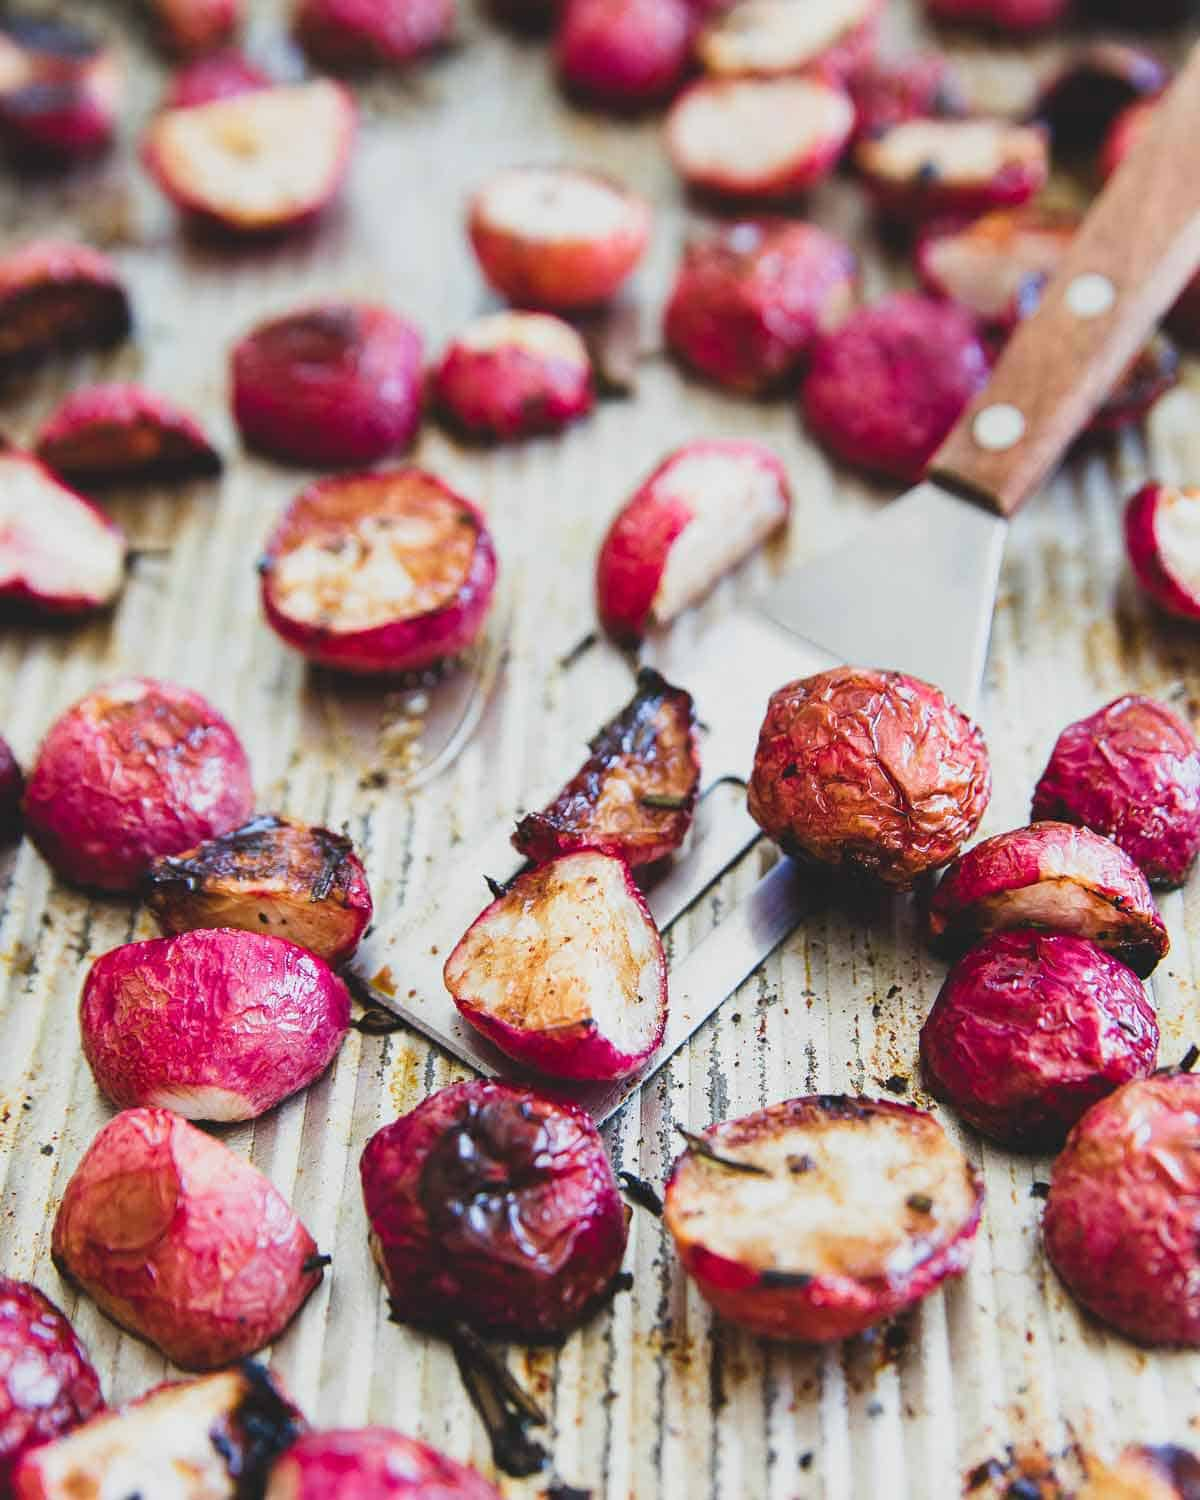 This simple roasted radish recipe makes the perfect easy vegetarian side dish for spring.